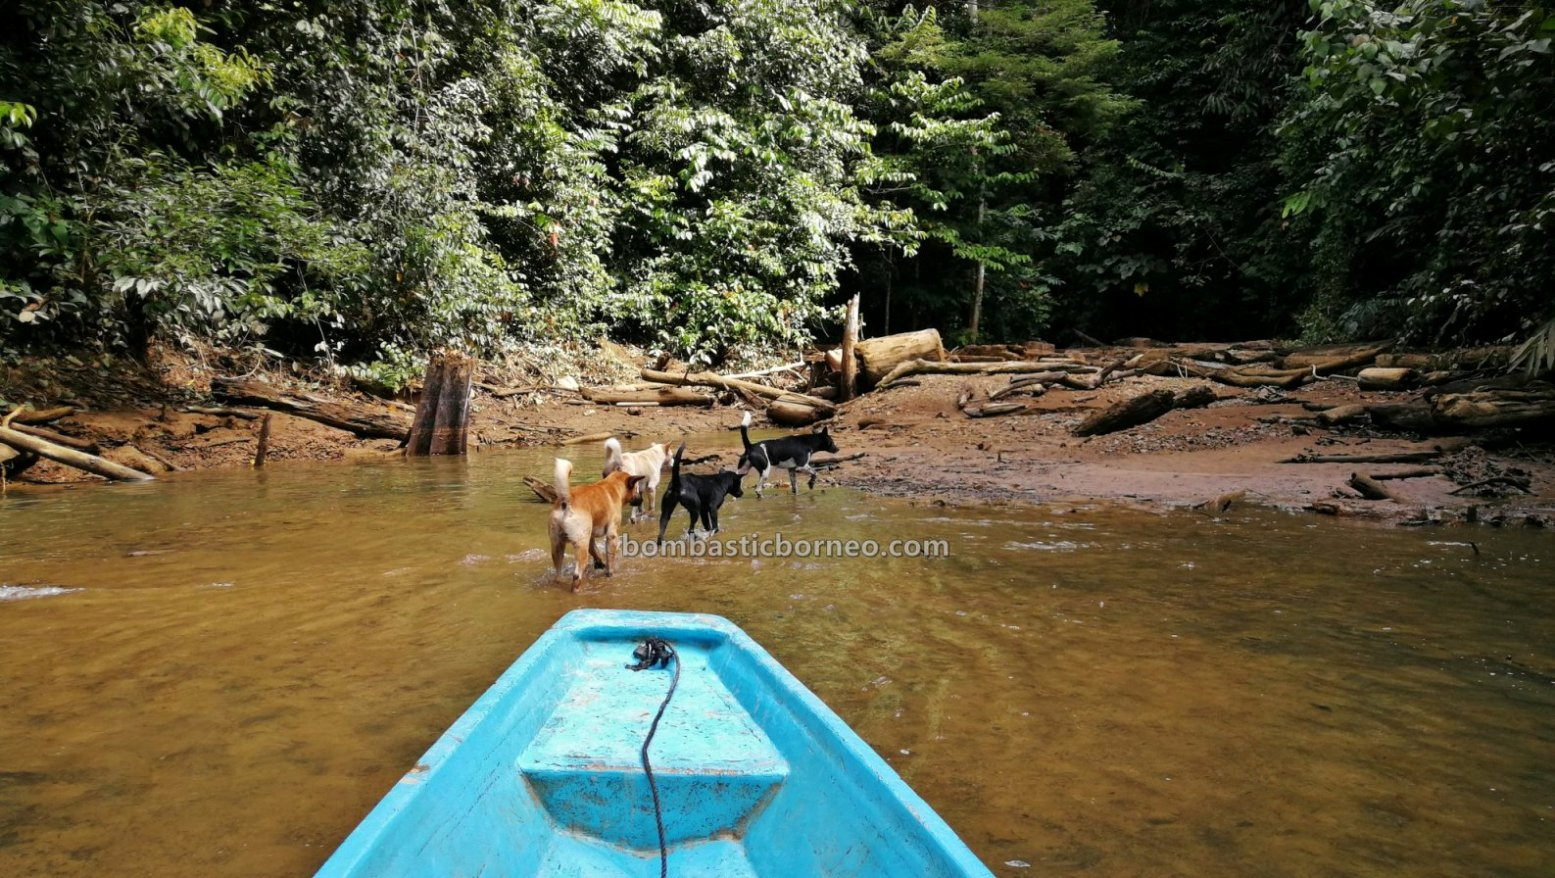 Embankment Dam, empangan, memburu, Ikan semah, fishing trip, Long Bulan, native, Tourism, tourist attraction, travel guide, Borneo, Sungai Balui, destination, 婆罗洲狩猎之旅, 砂拉越布拉甲